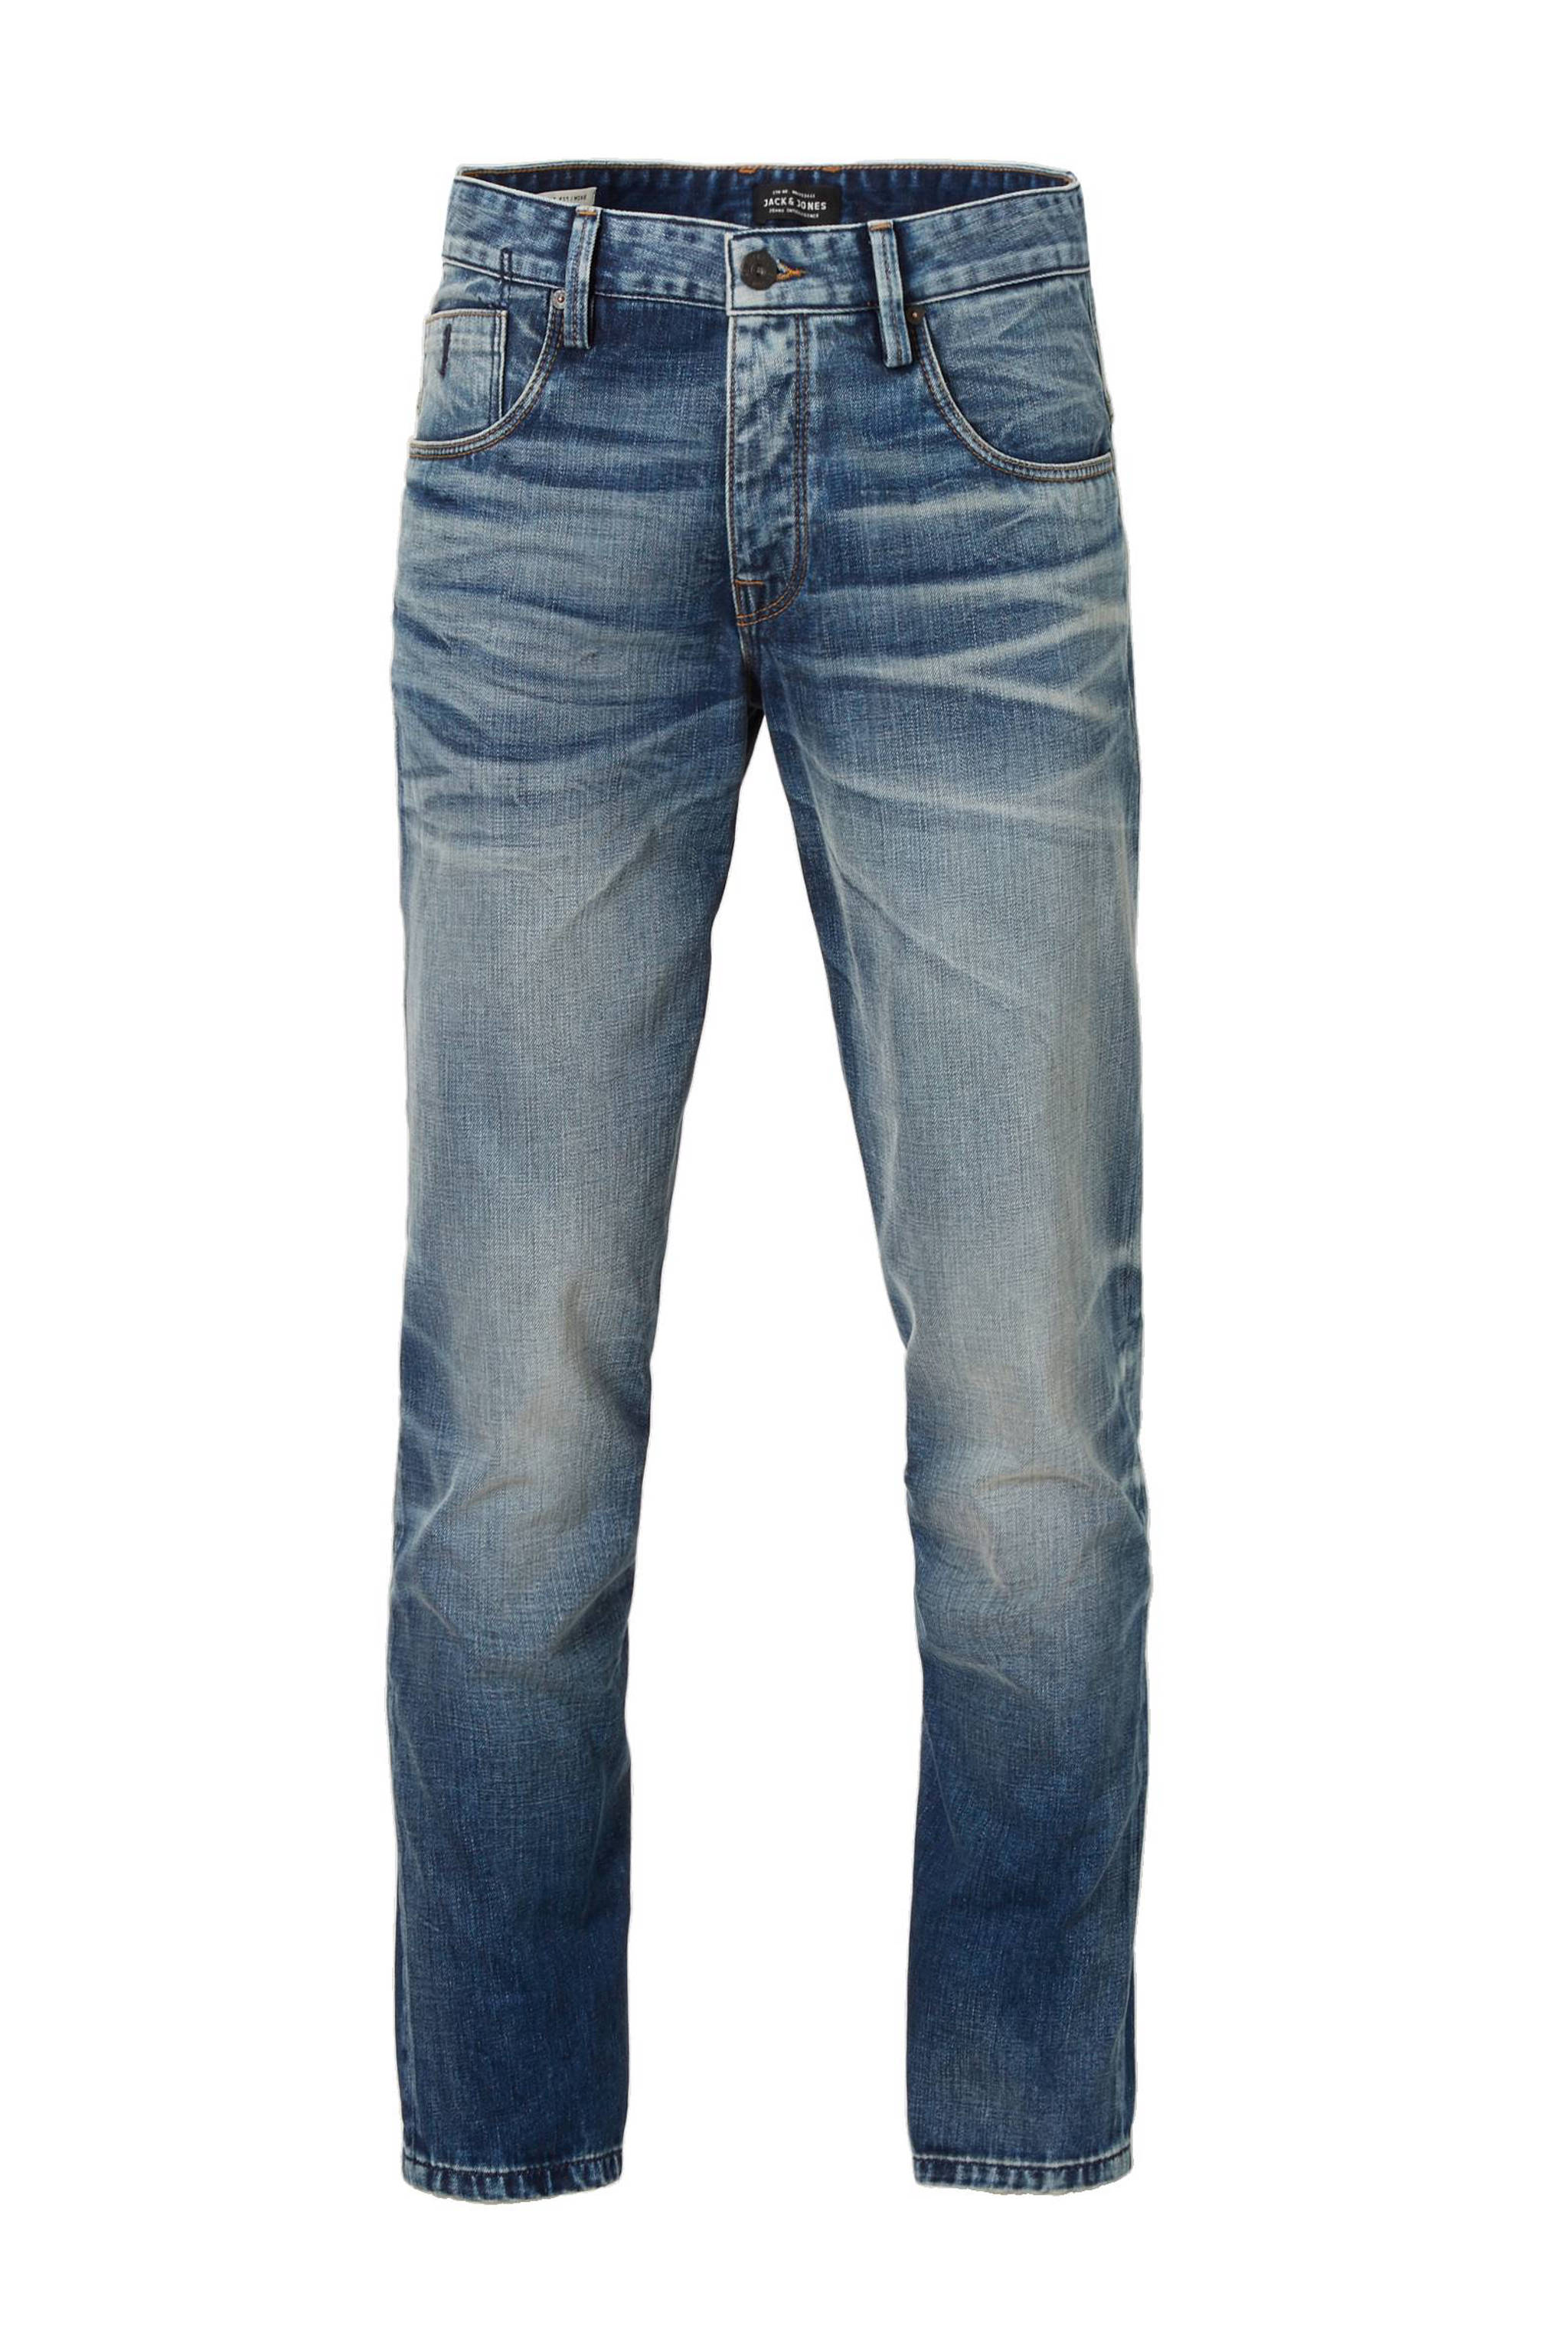 lowest discount free delivery look good shoes sale Jack & Jones Jeans Intelligence loose fit comfort jeans Mike Ron